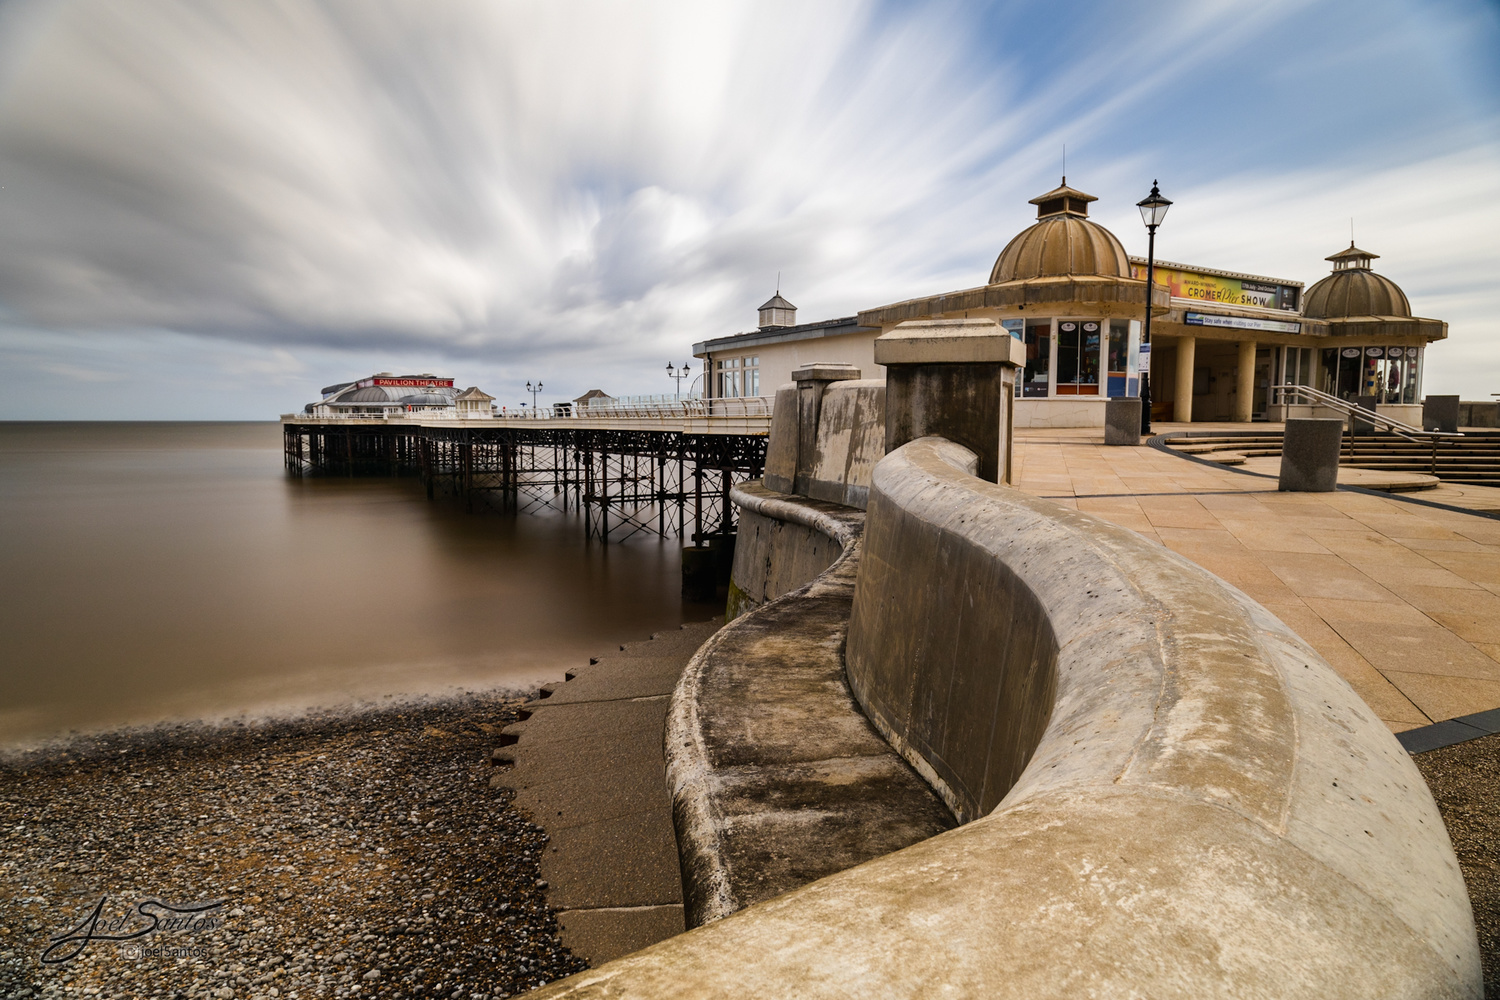 Windy morning at the pier by Joel Santos